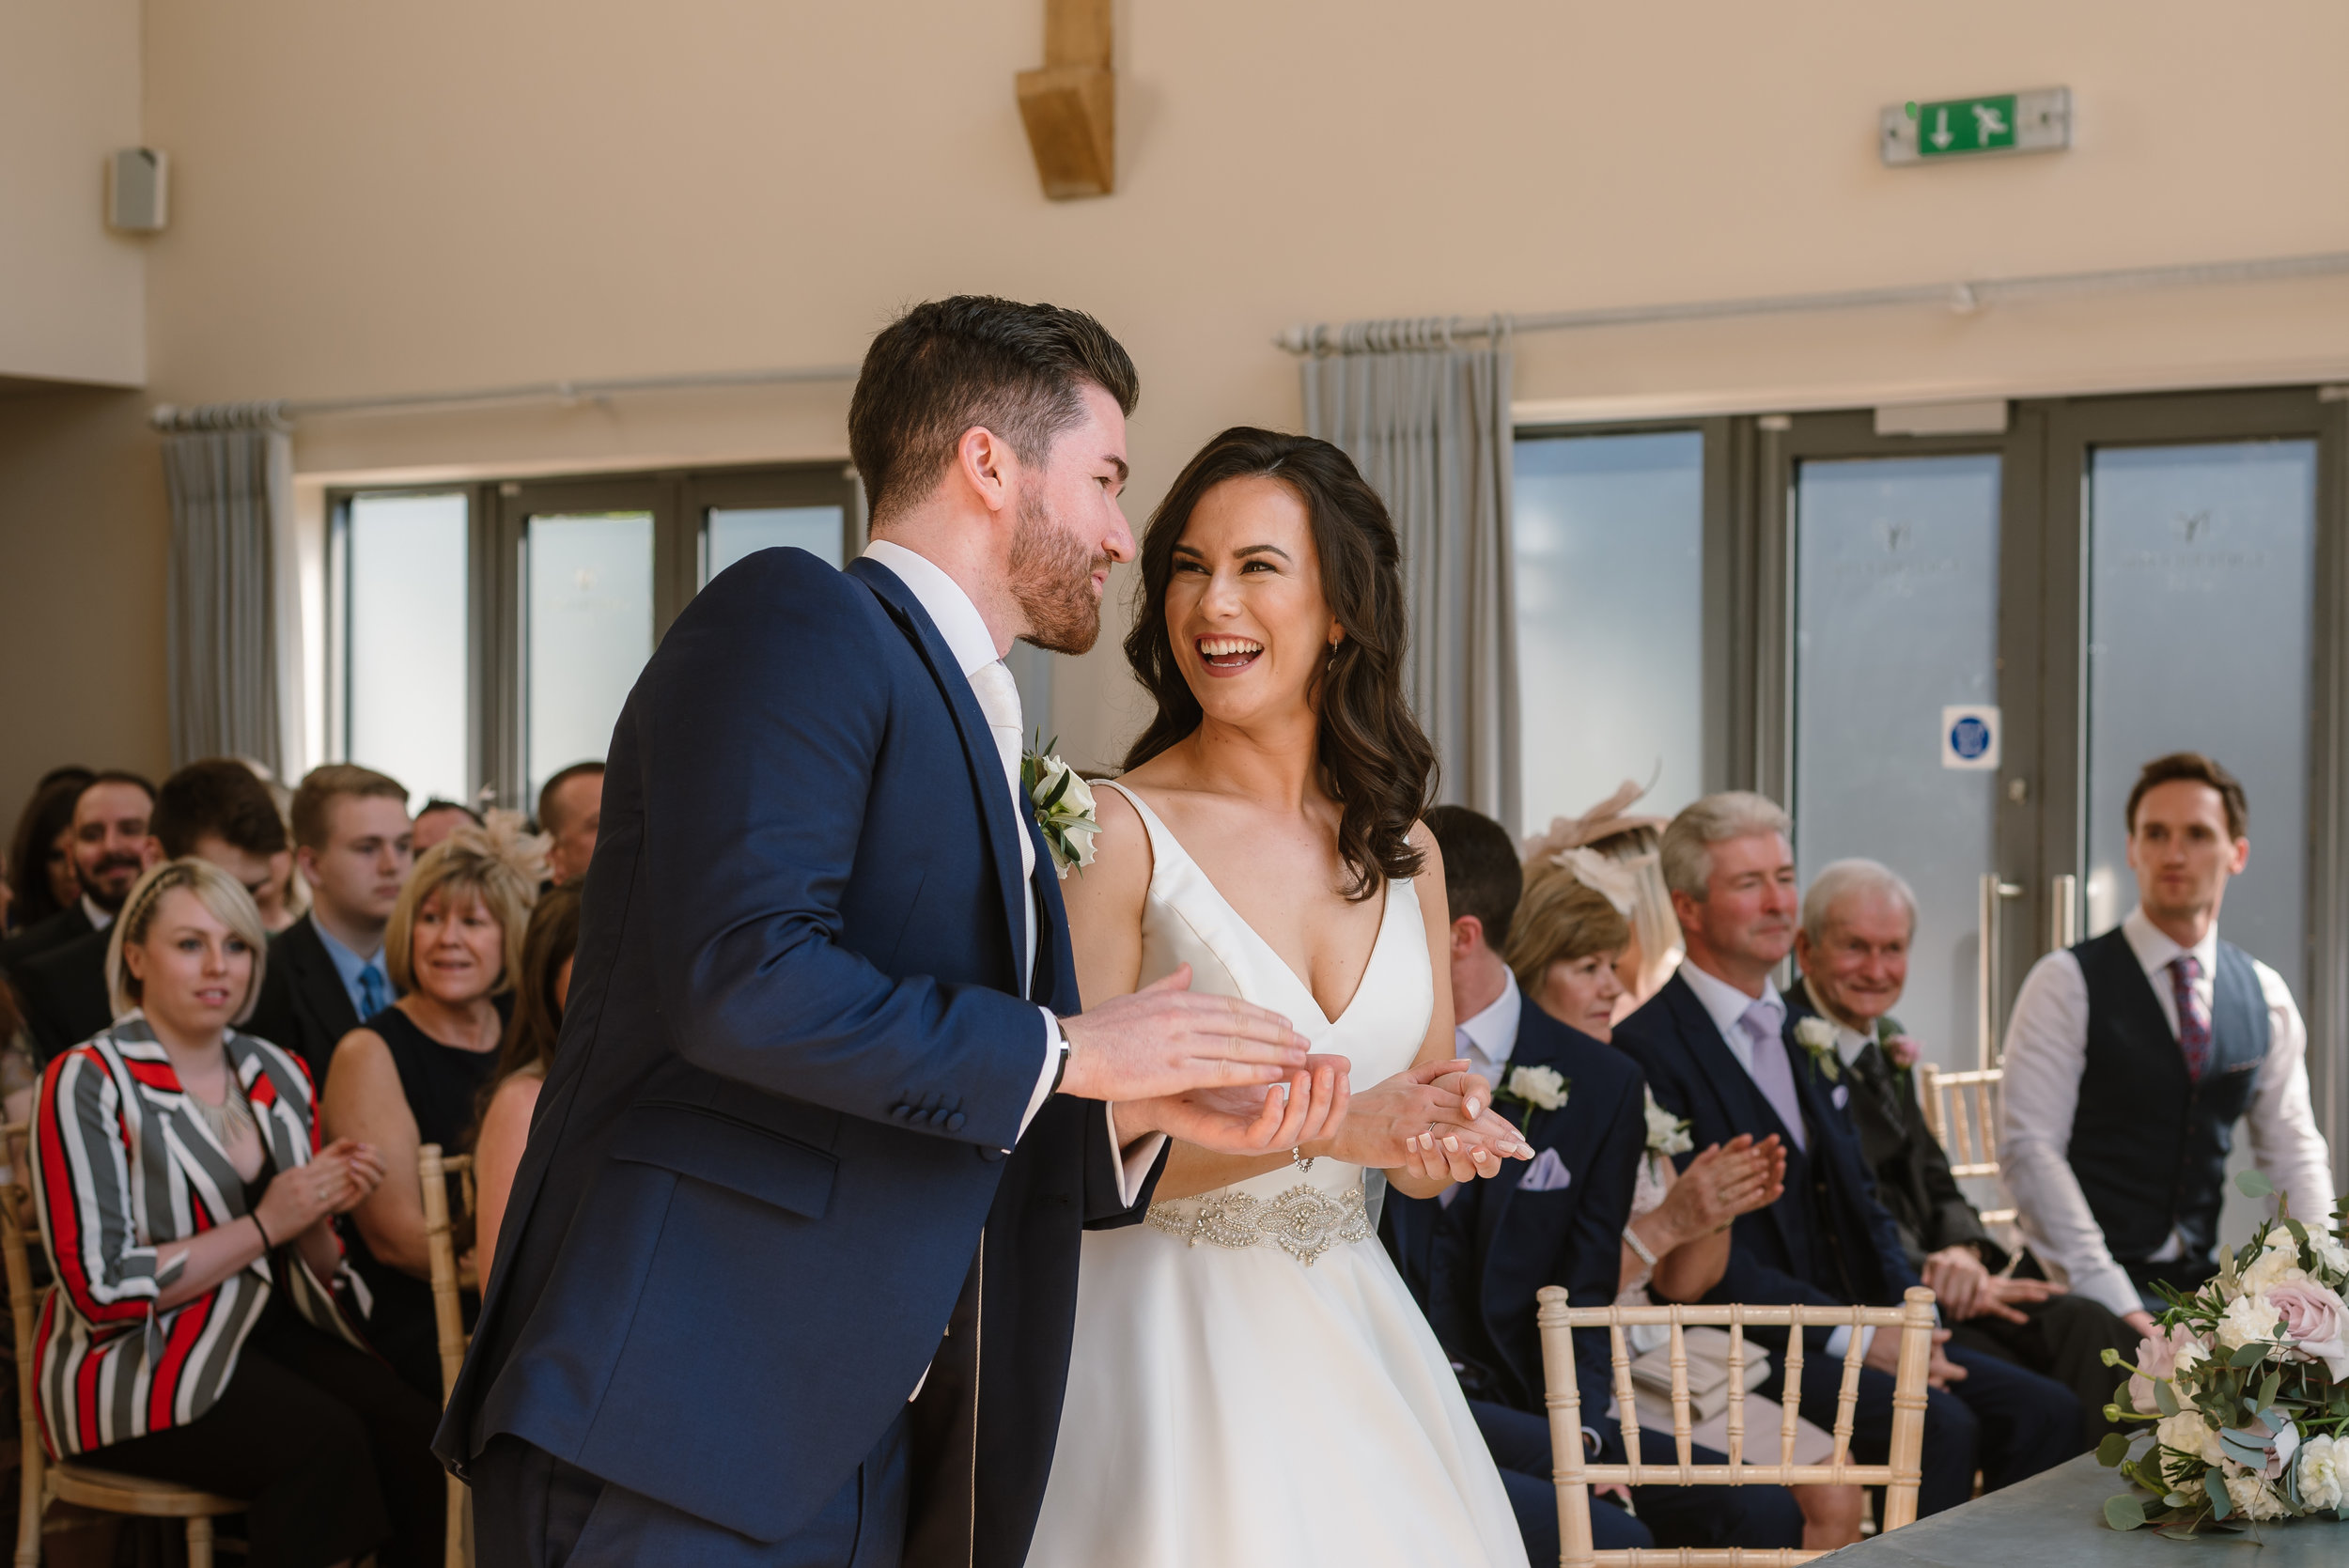 Sarah-Fishlock-Photography : Hampshire-wedding-photographer-hampshire : fleet-wedding-photographer-fleet : Millbridge-Court-Wedding-Photographer : Millbridge-Court-Wedding-Venue